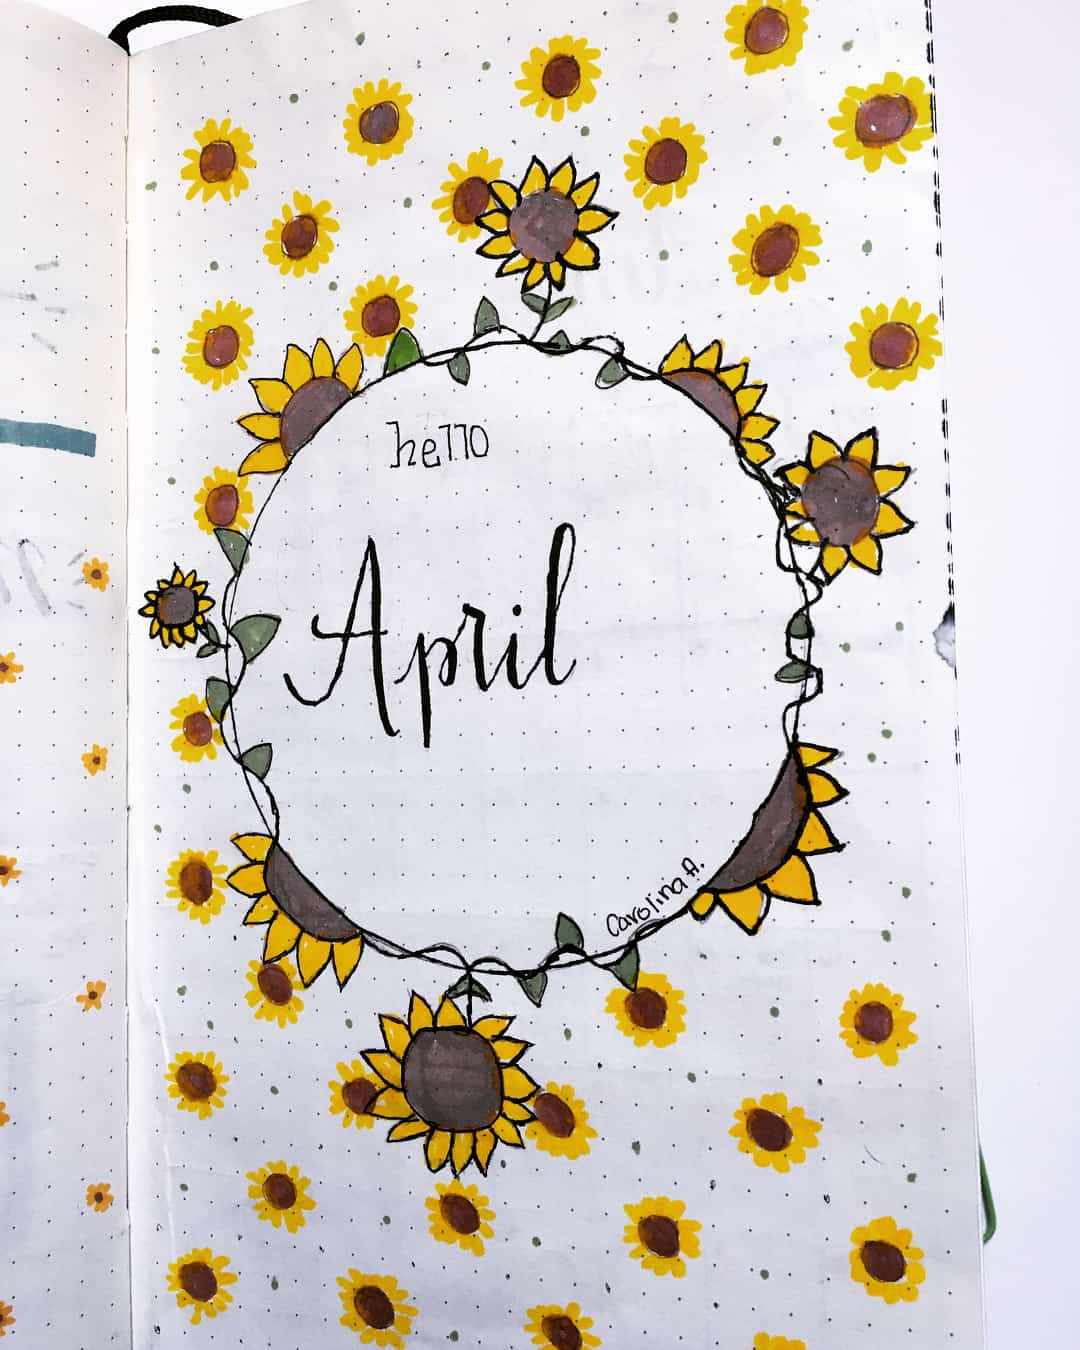 A photo of a cover page for a Bullet Journal that says Hello April and is decorated with sunflowers